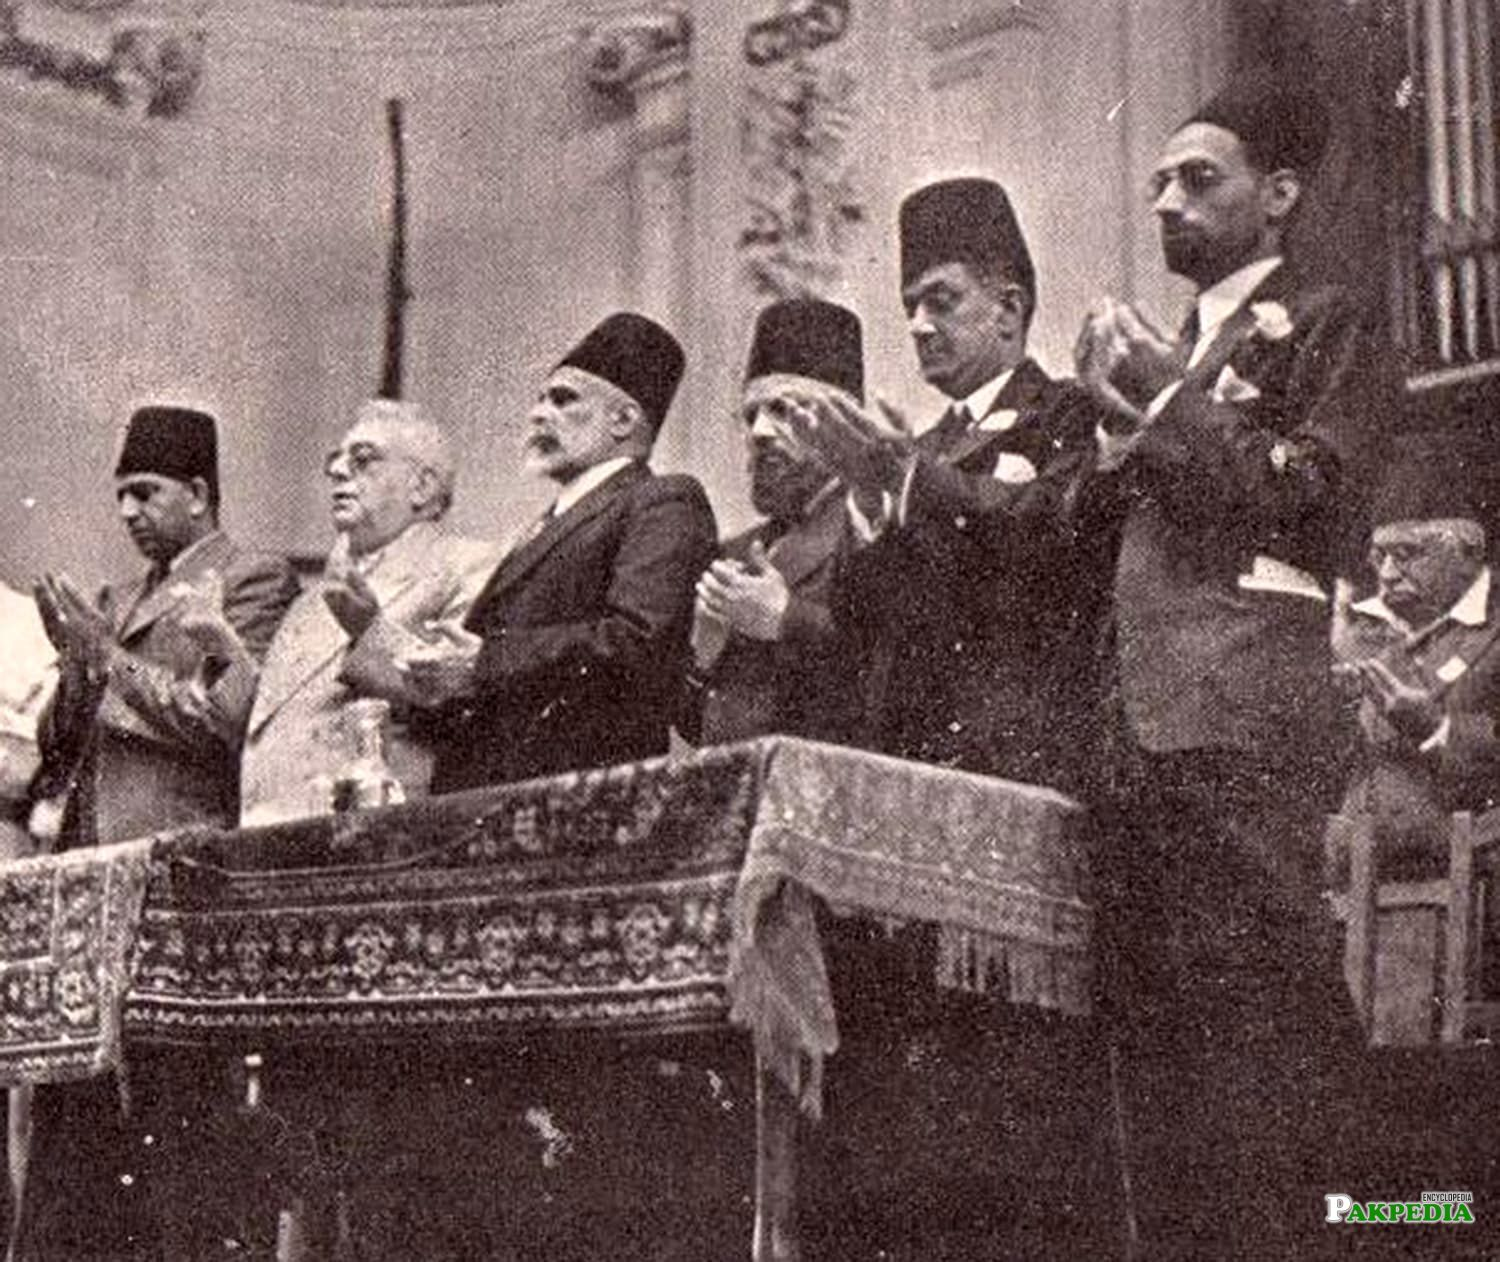 Founding fathers of All india Muslim league